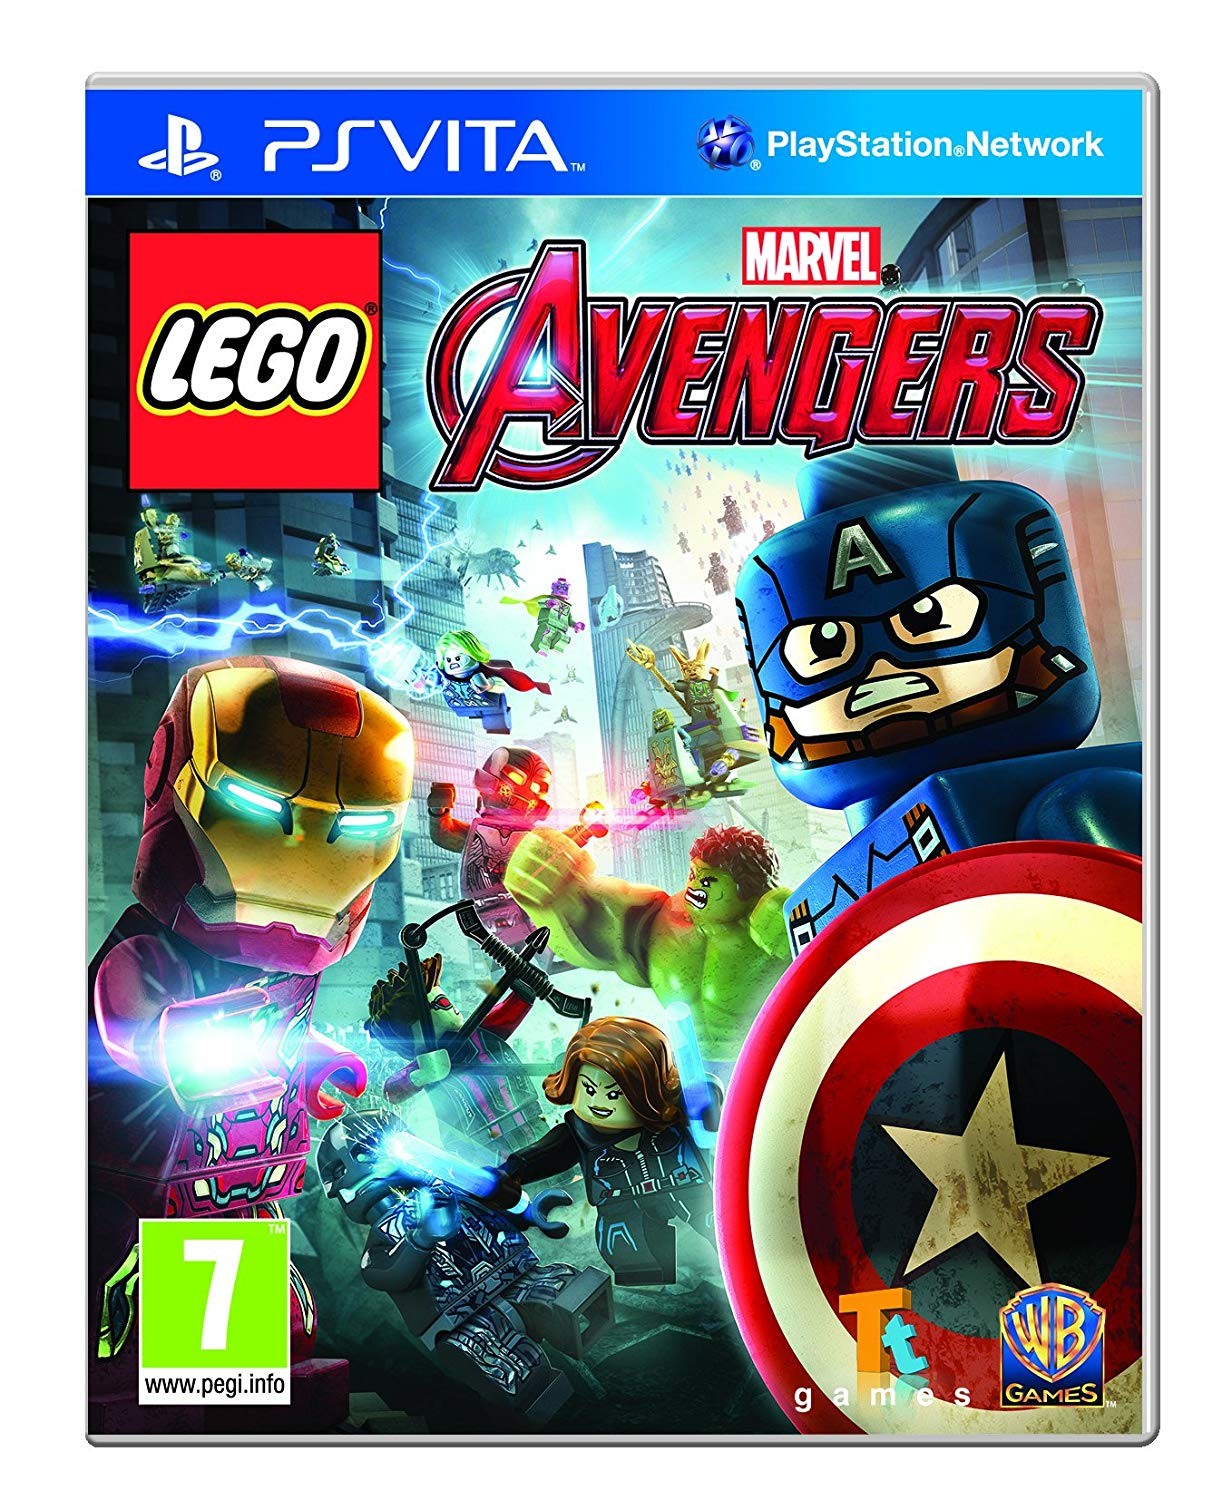 LEGO MARVELS AVENGERS - PS Vita